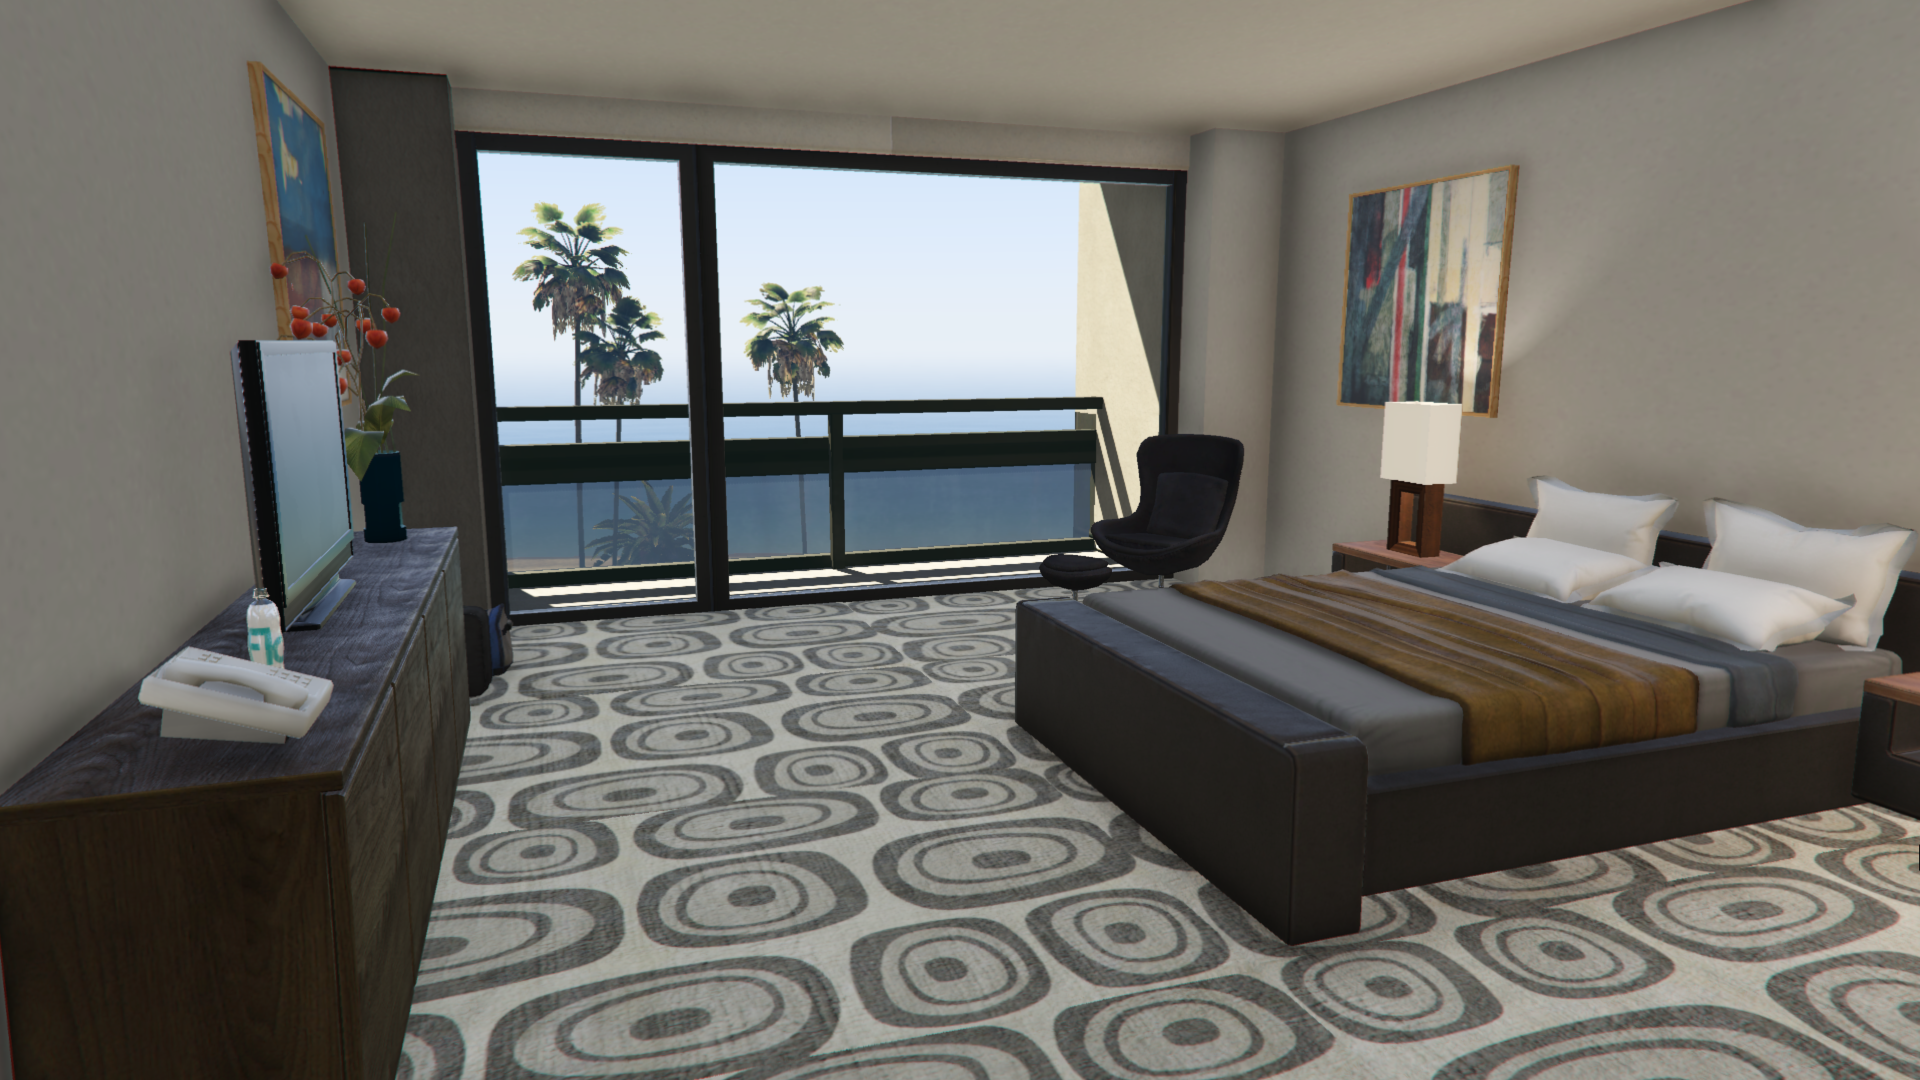 Gta 5 bedroom wallpaper for 5 bedroom